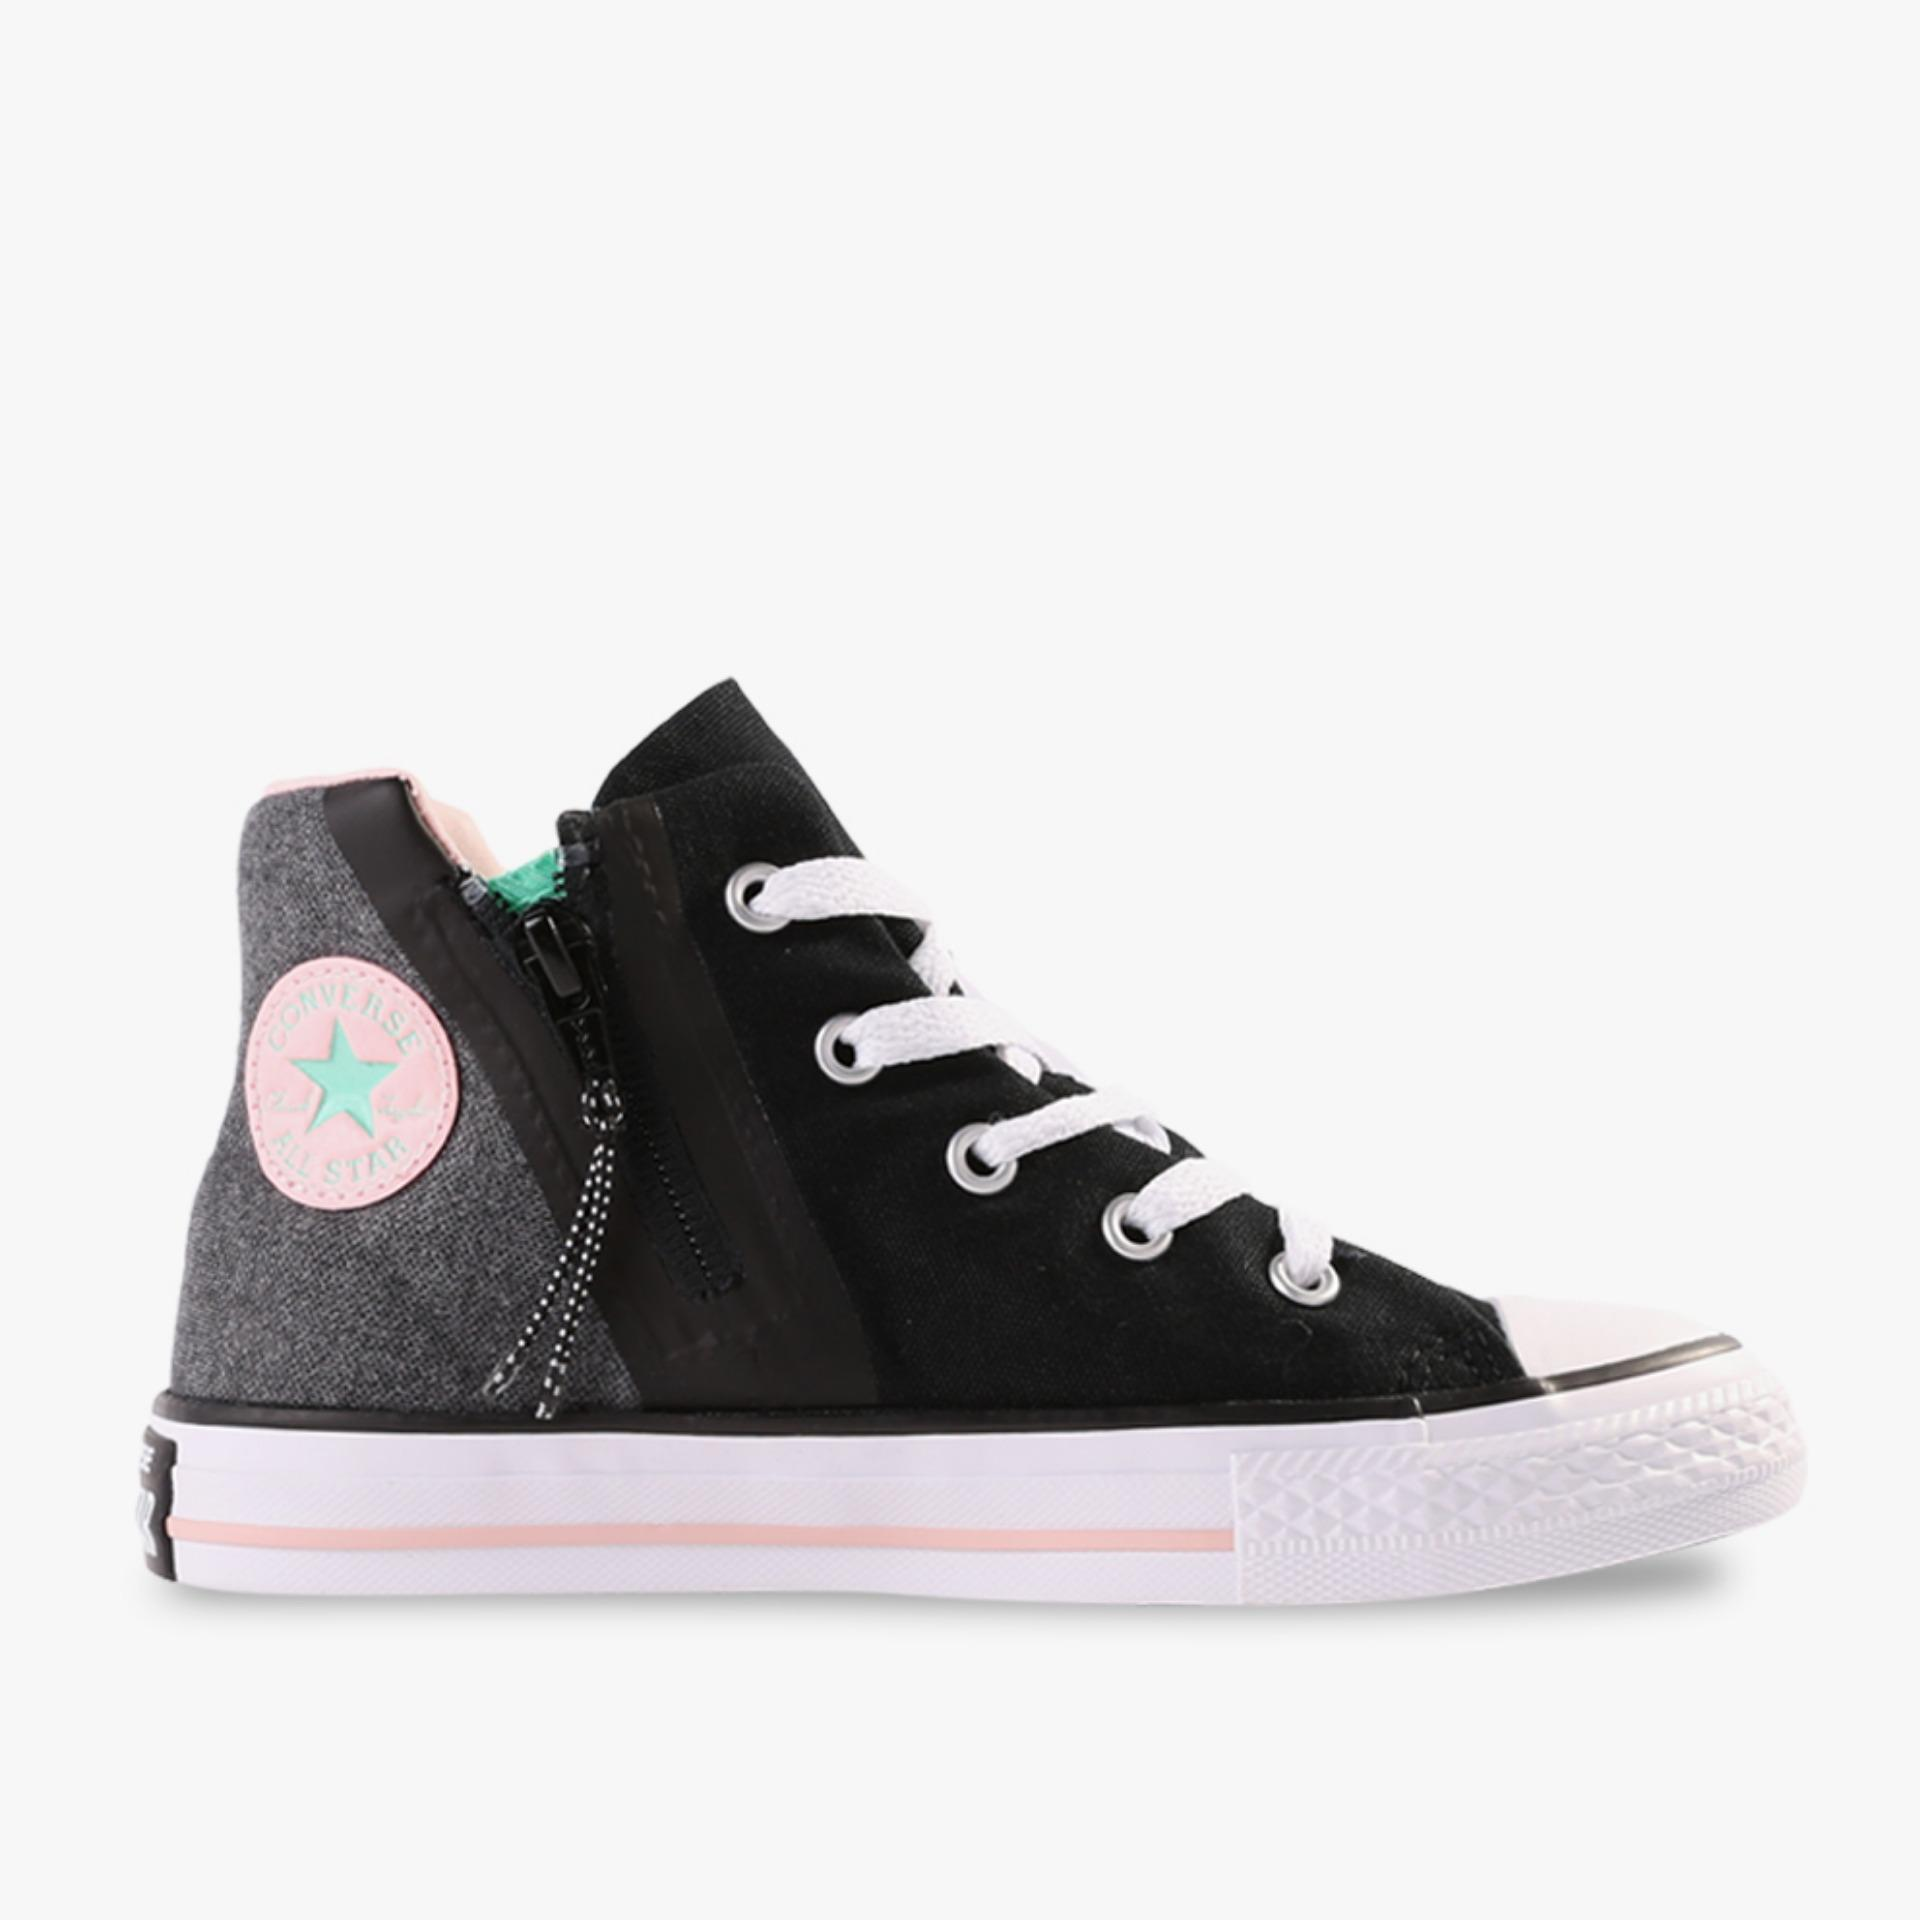 Situs Review Converse Chuck Taylor All Star Sport Zip Hi Kids Sneakers Hitam